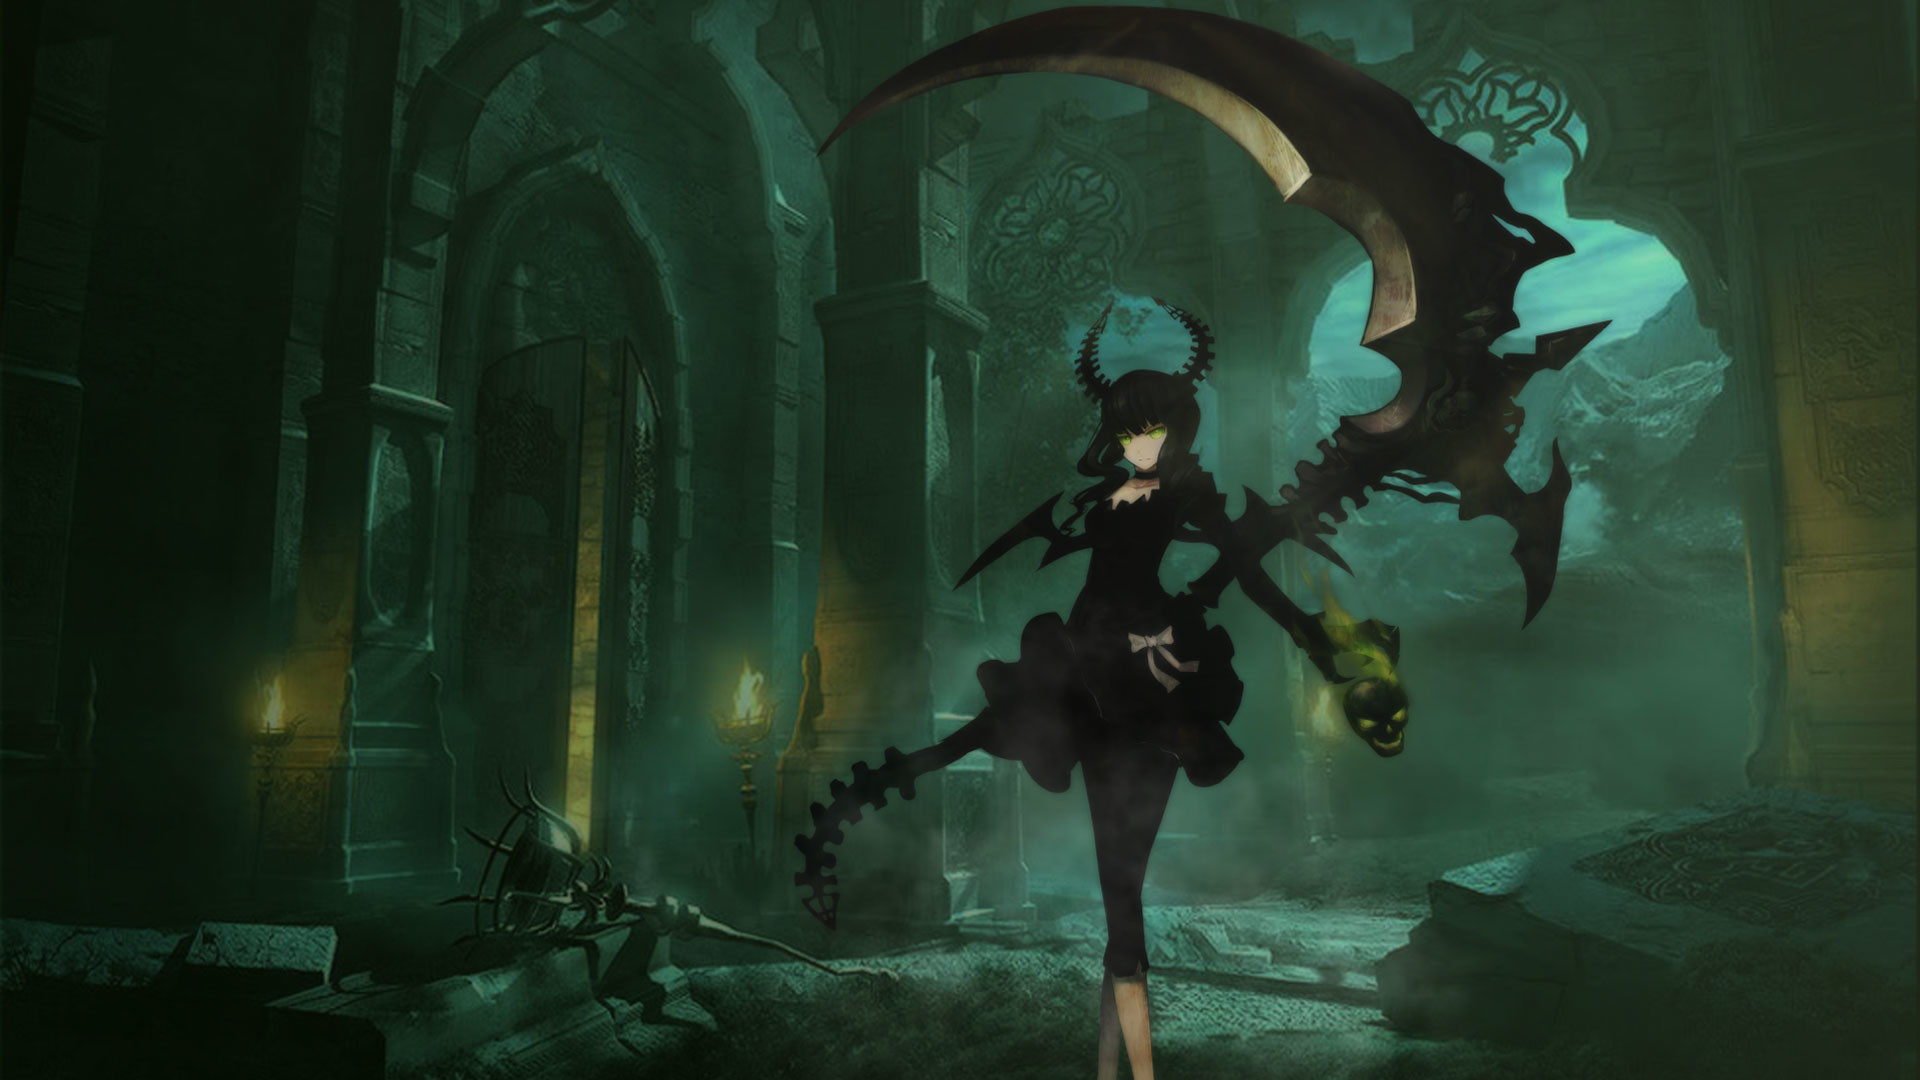 Image Anime wallpapers (27 Wallpapers)